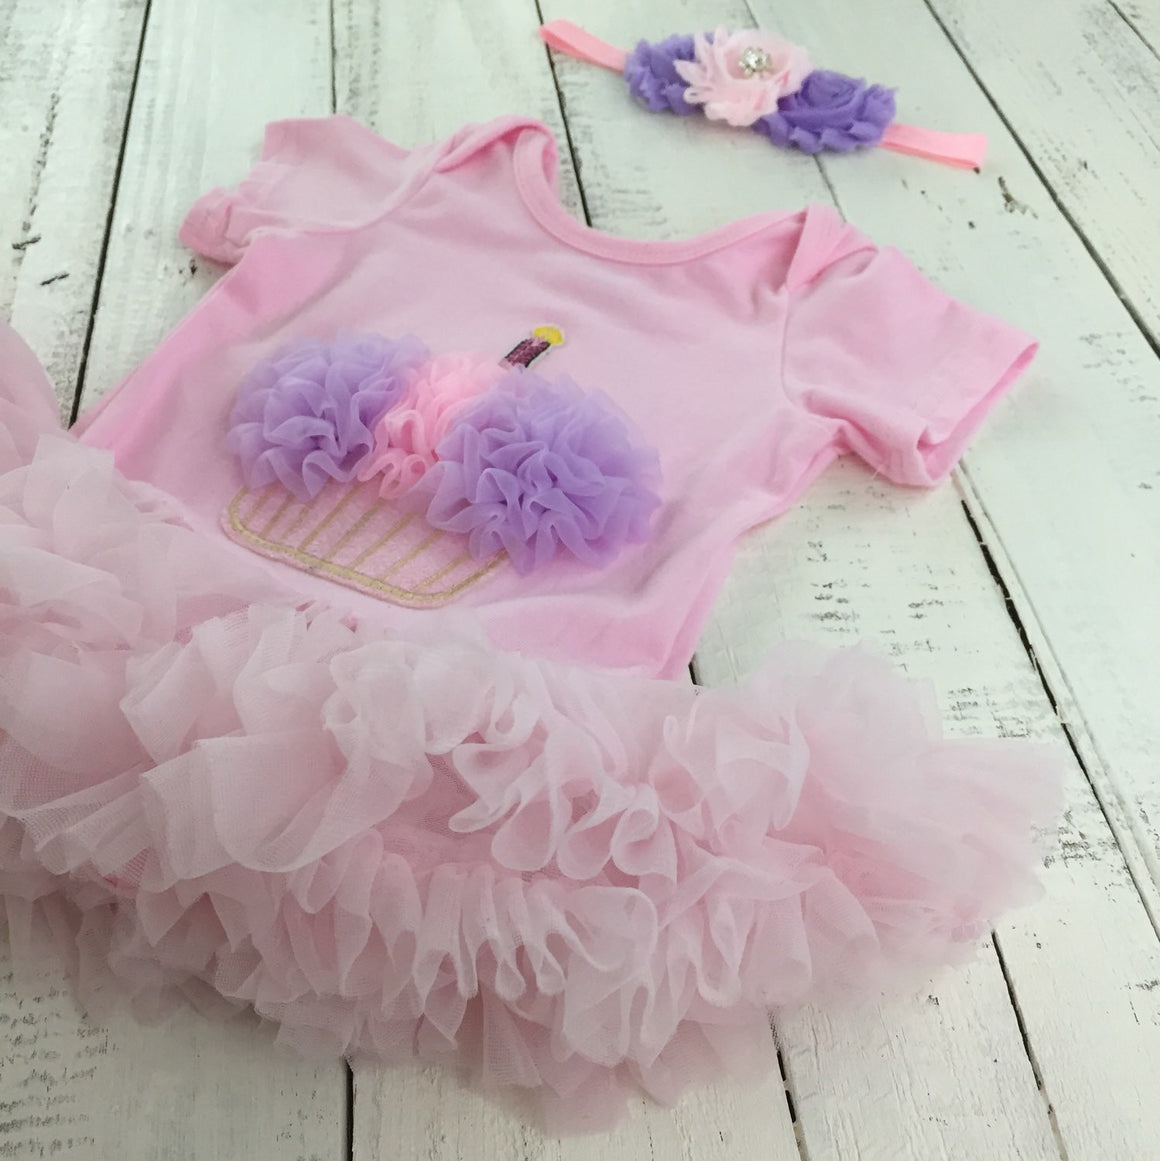 Cupcake Tutu Dress - Pink and Purple - HoneyLoveBoutique